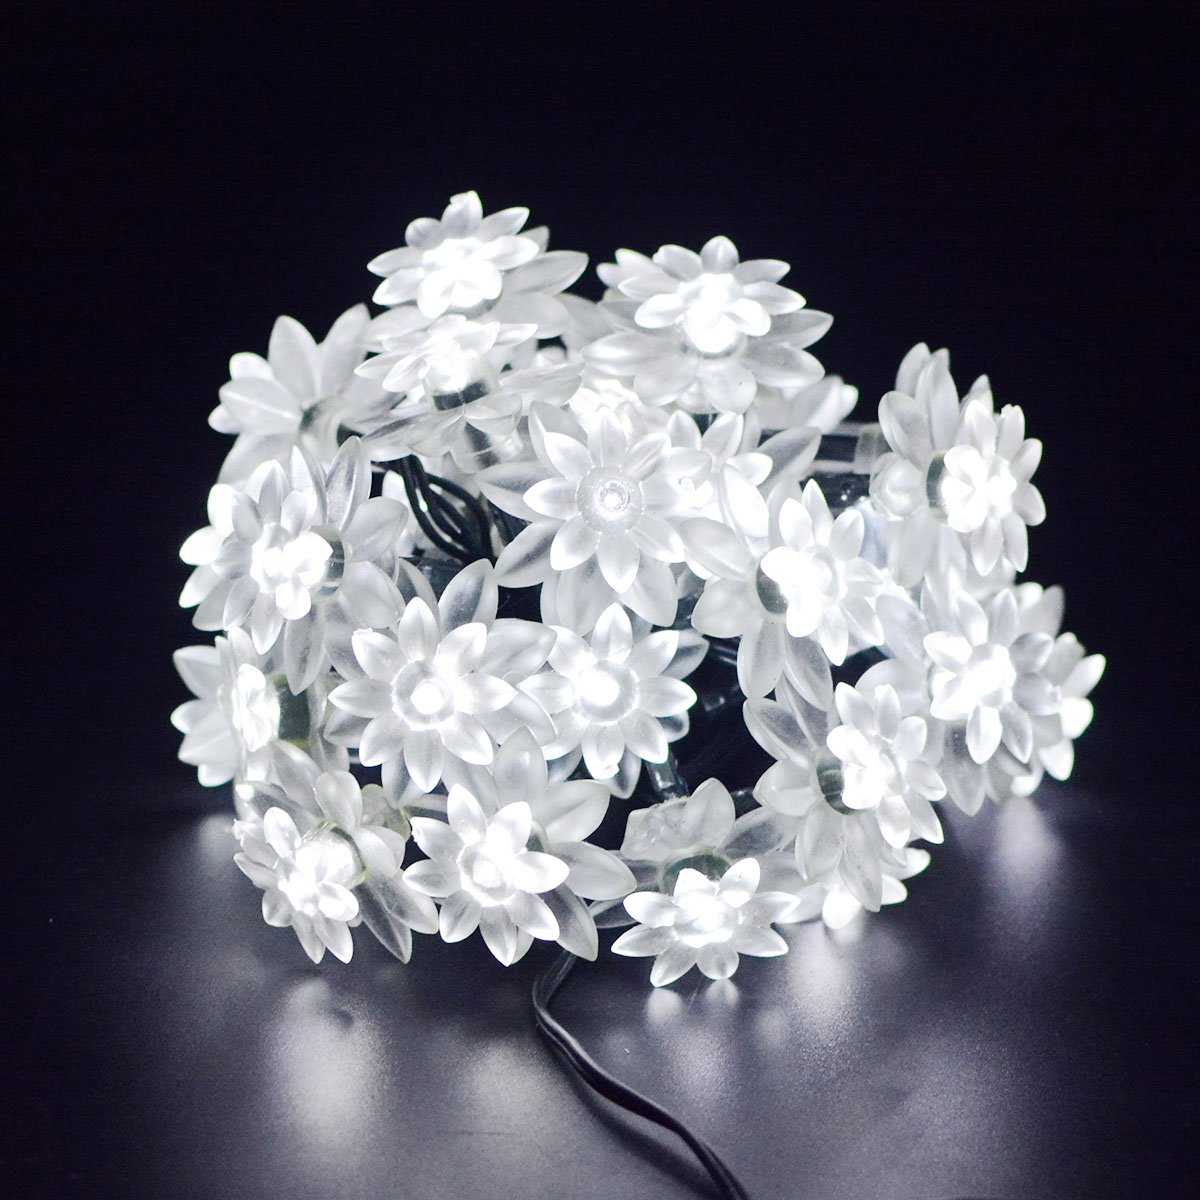 Chinabrandscom Dropshipping Wholesale Cheap Solar String Lights